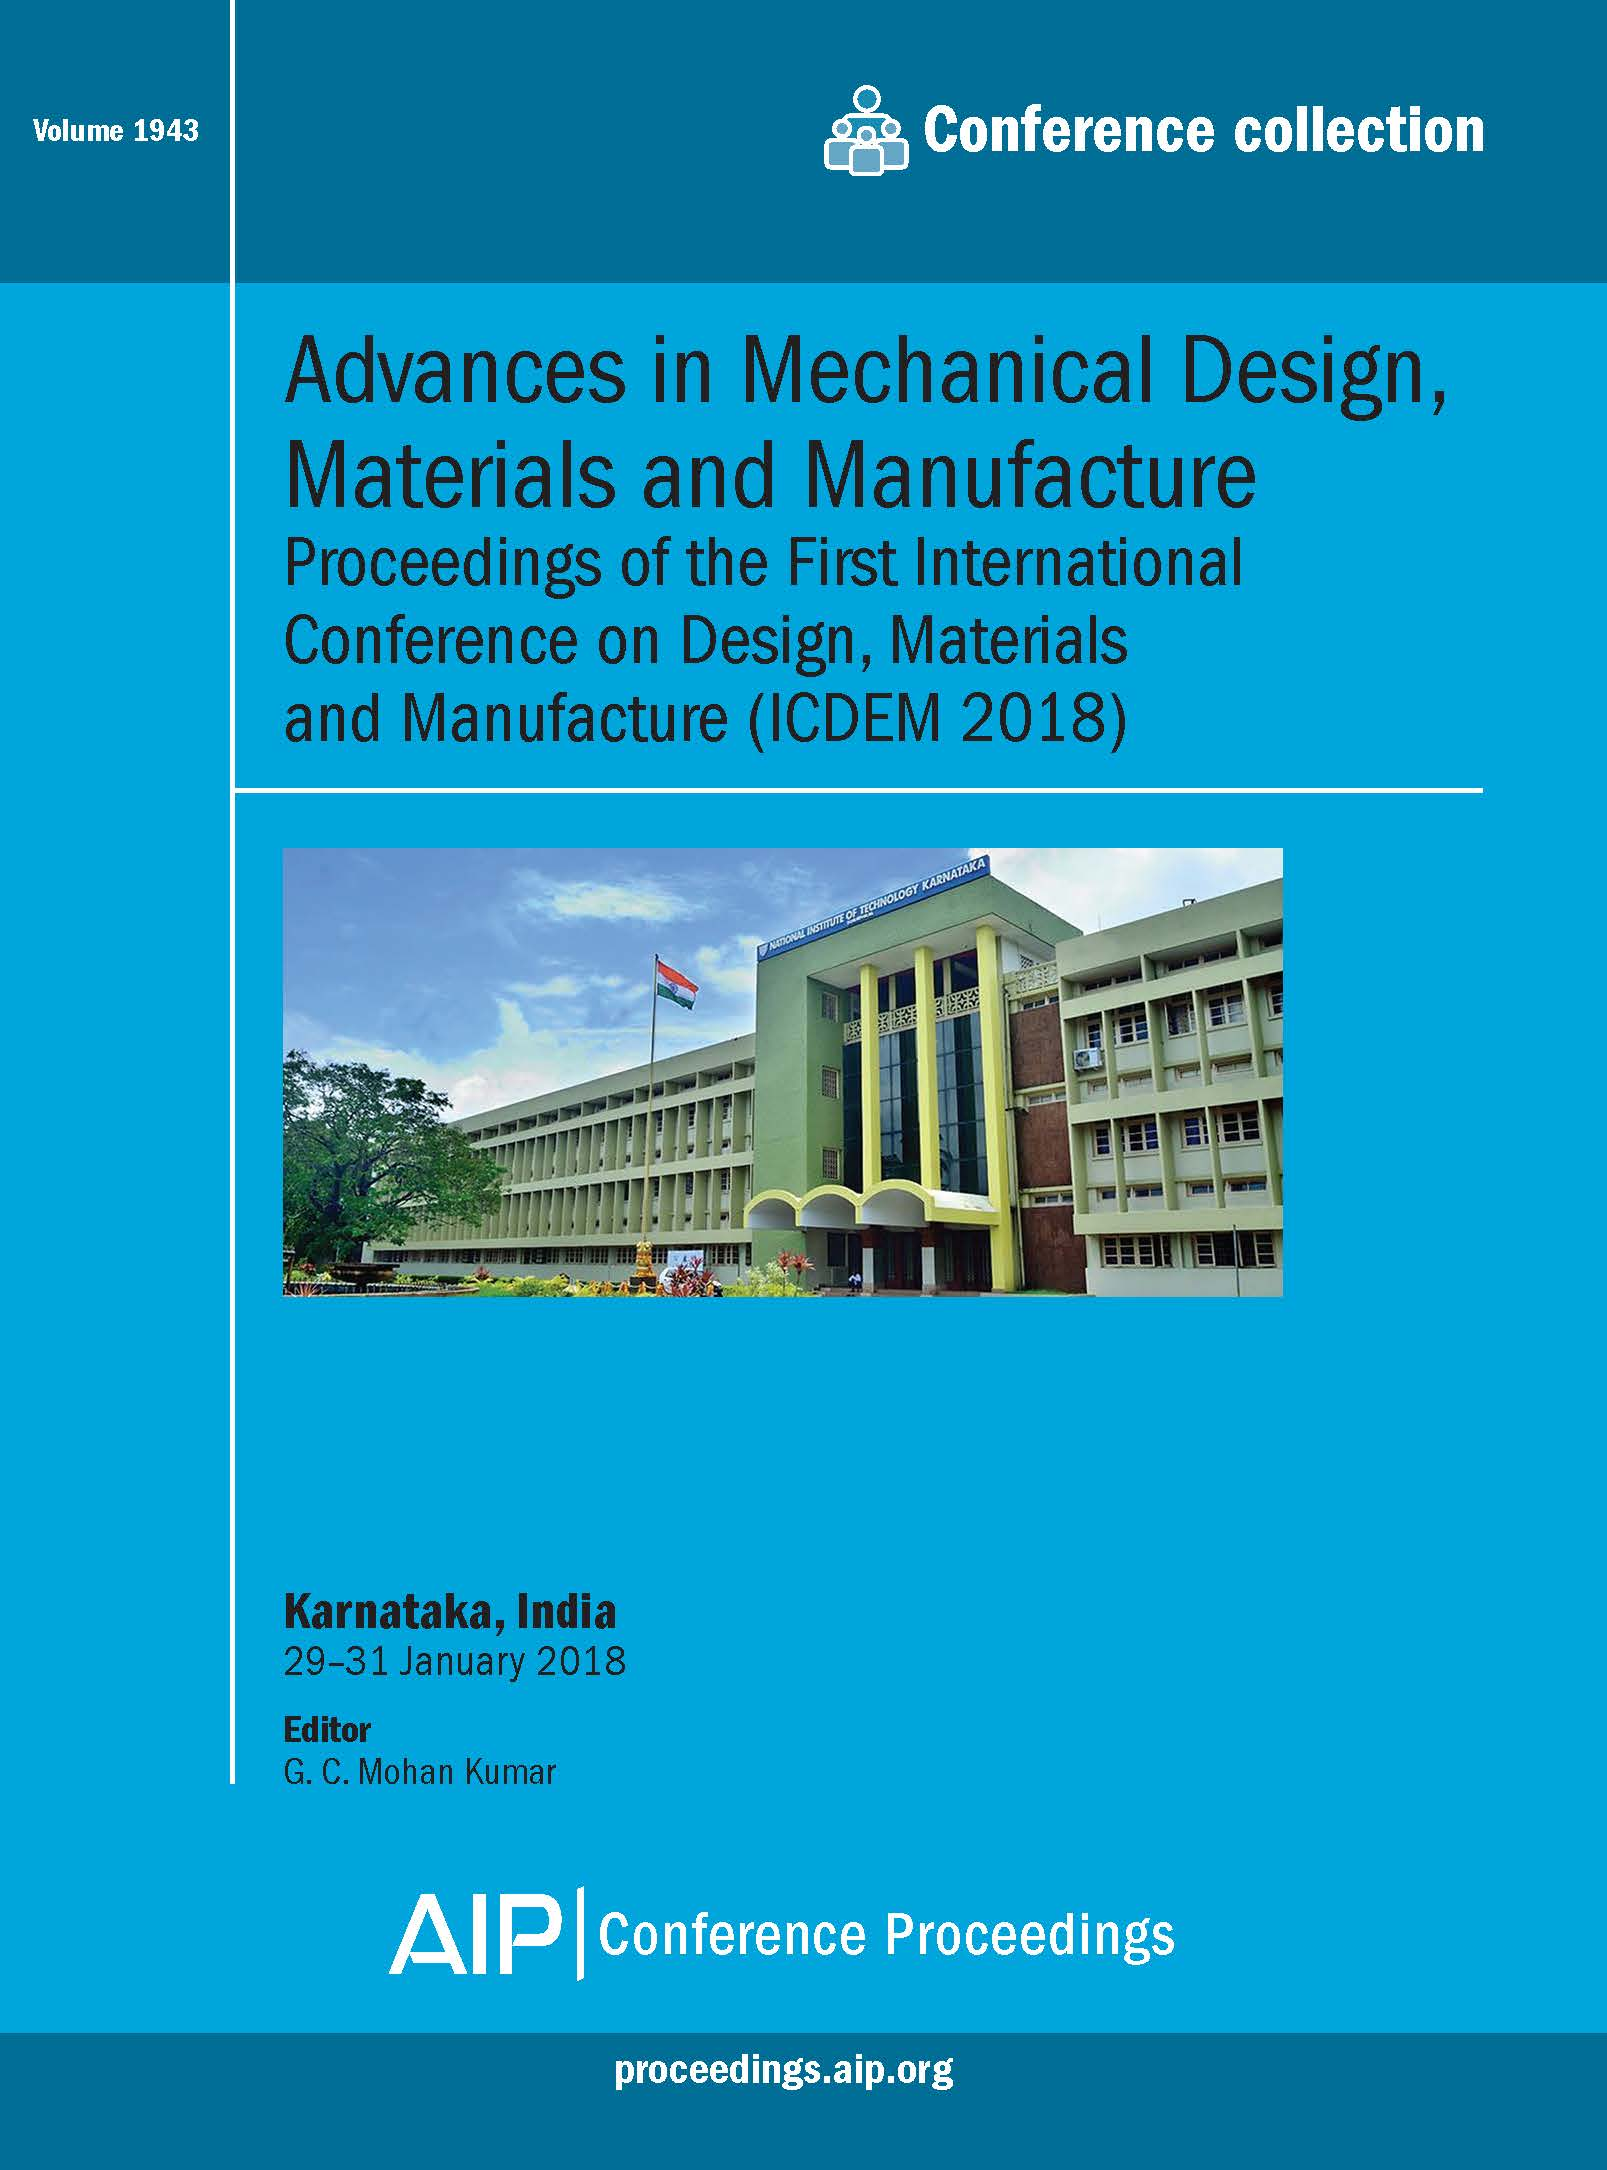 Volume 1943: Advances in Mechanical Design, Materials and